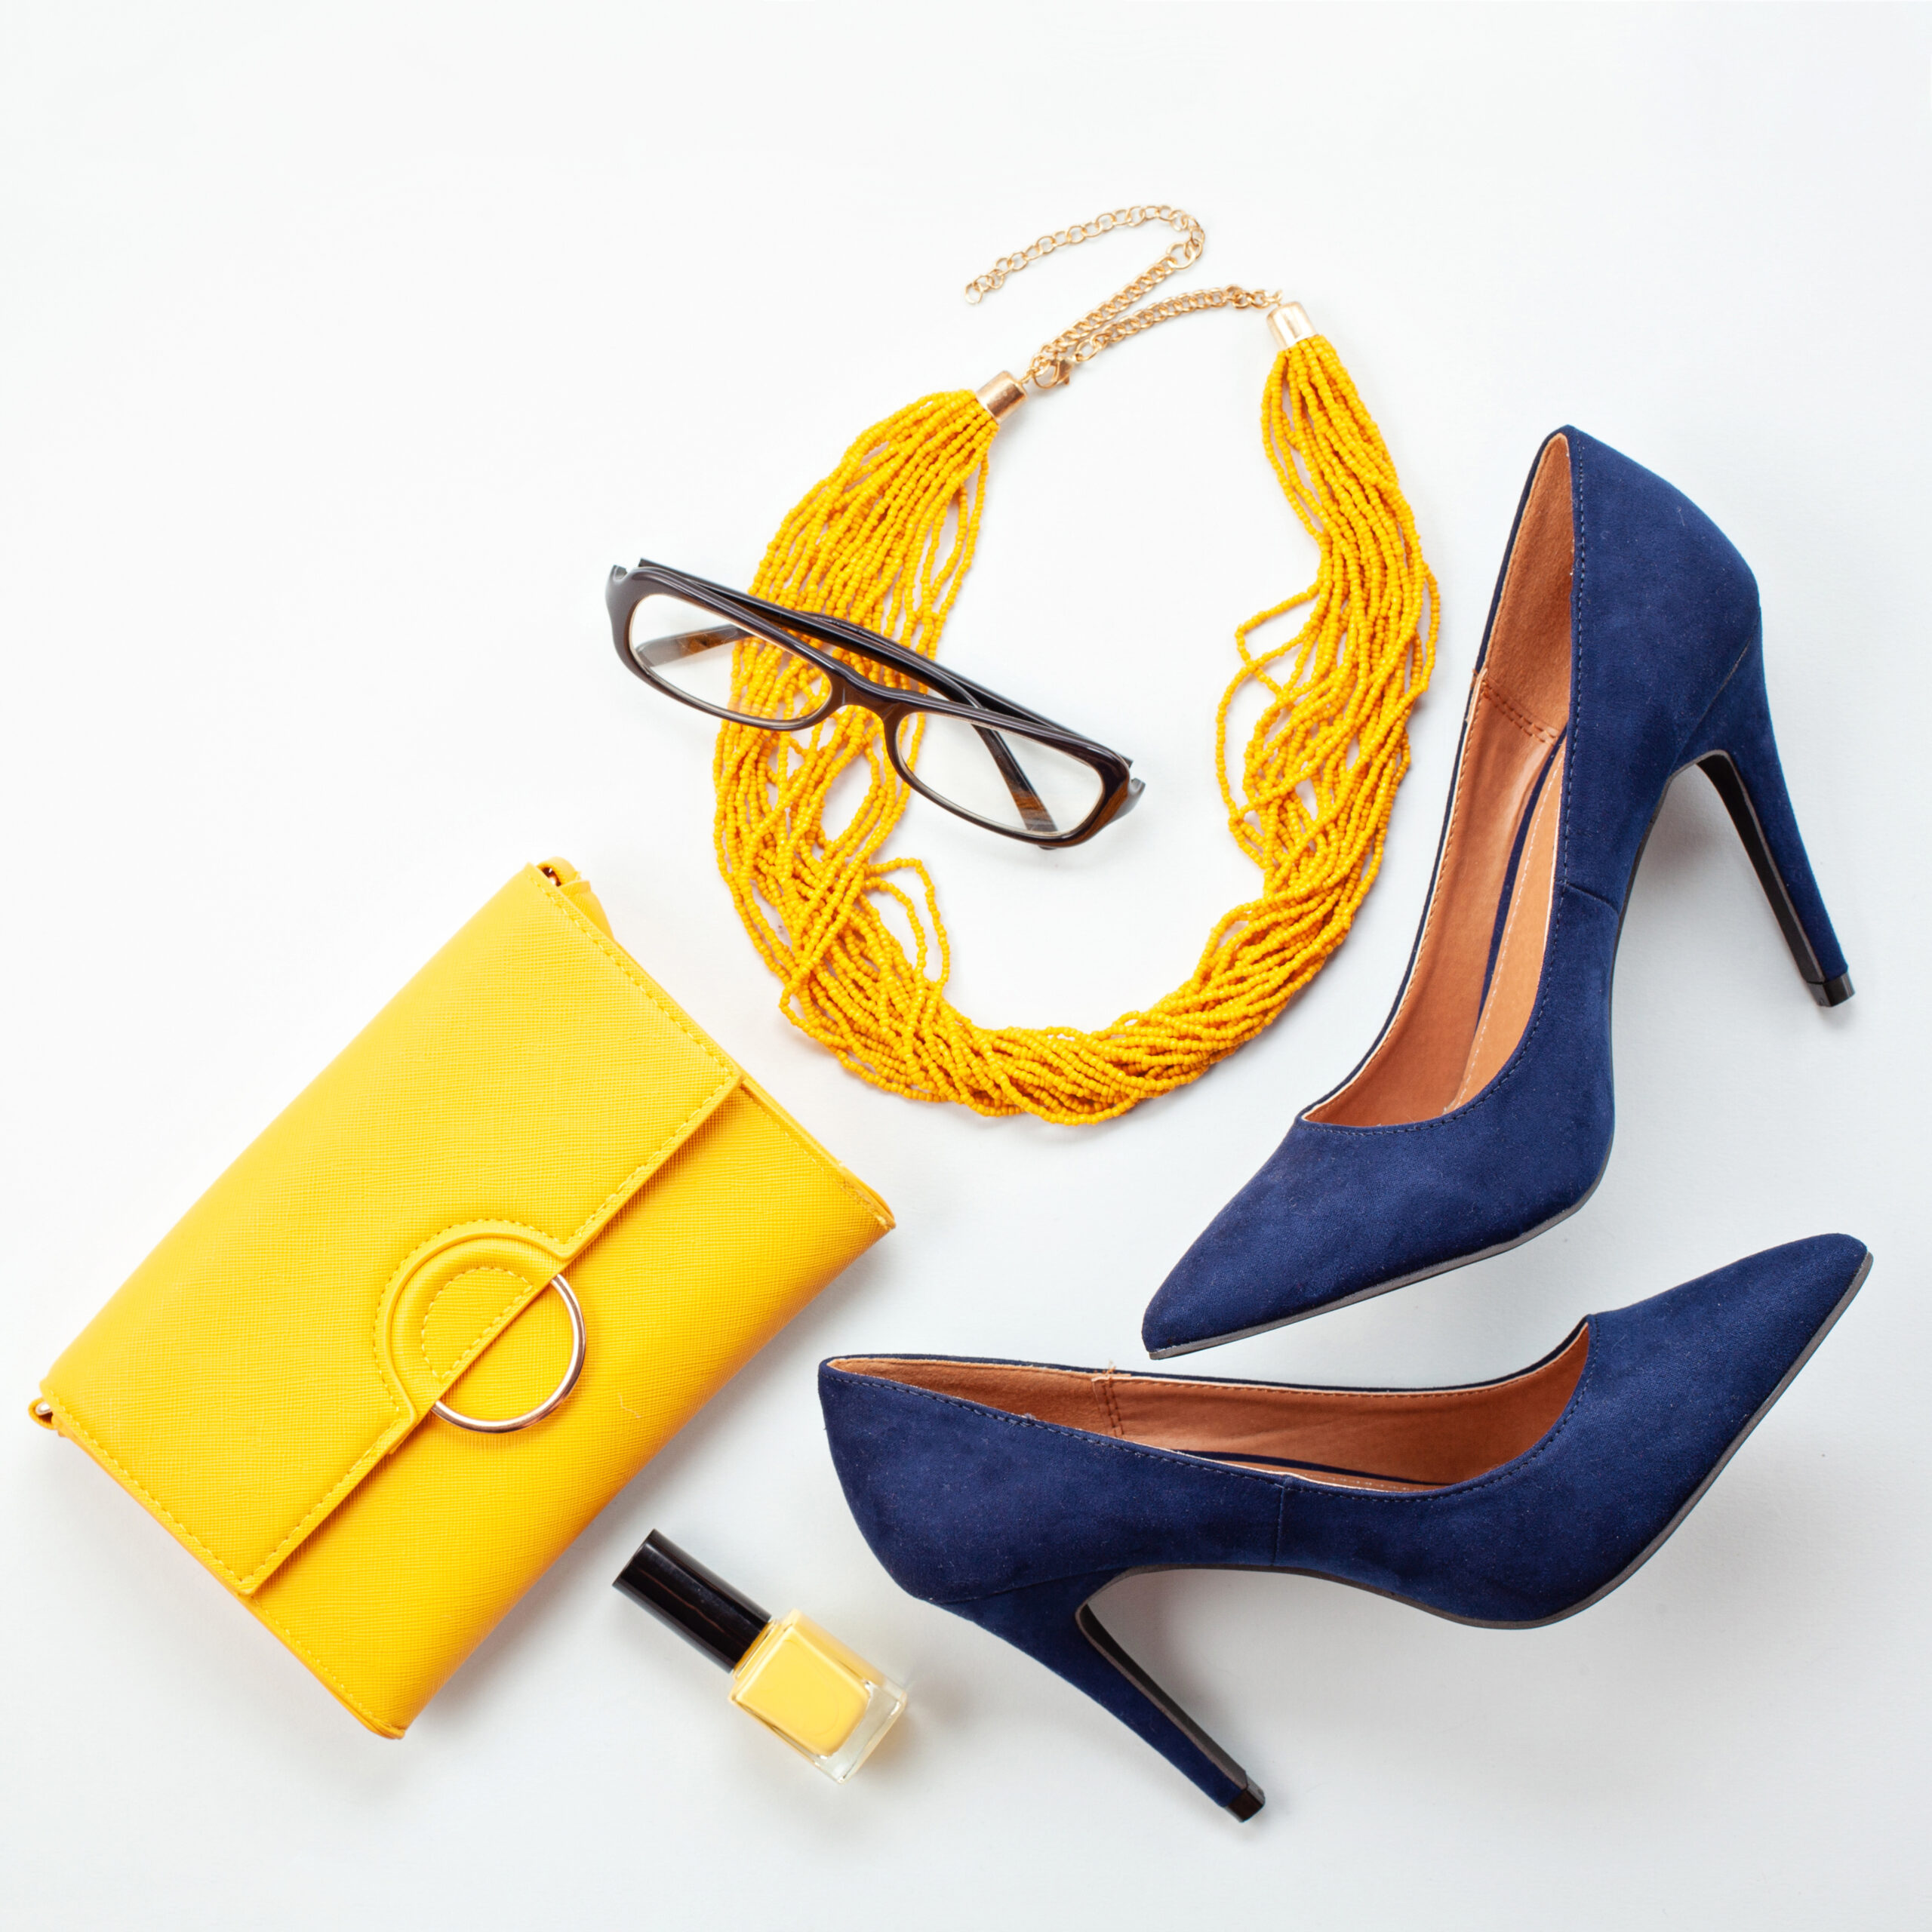 Bright yellow accessories and blue shoes for girls and women. Urban fashion, beauty and fashion blog concept